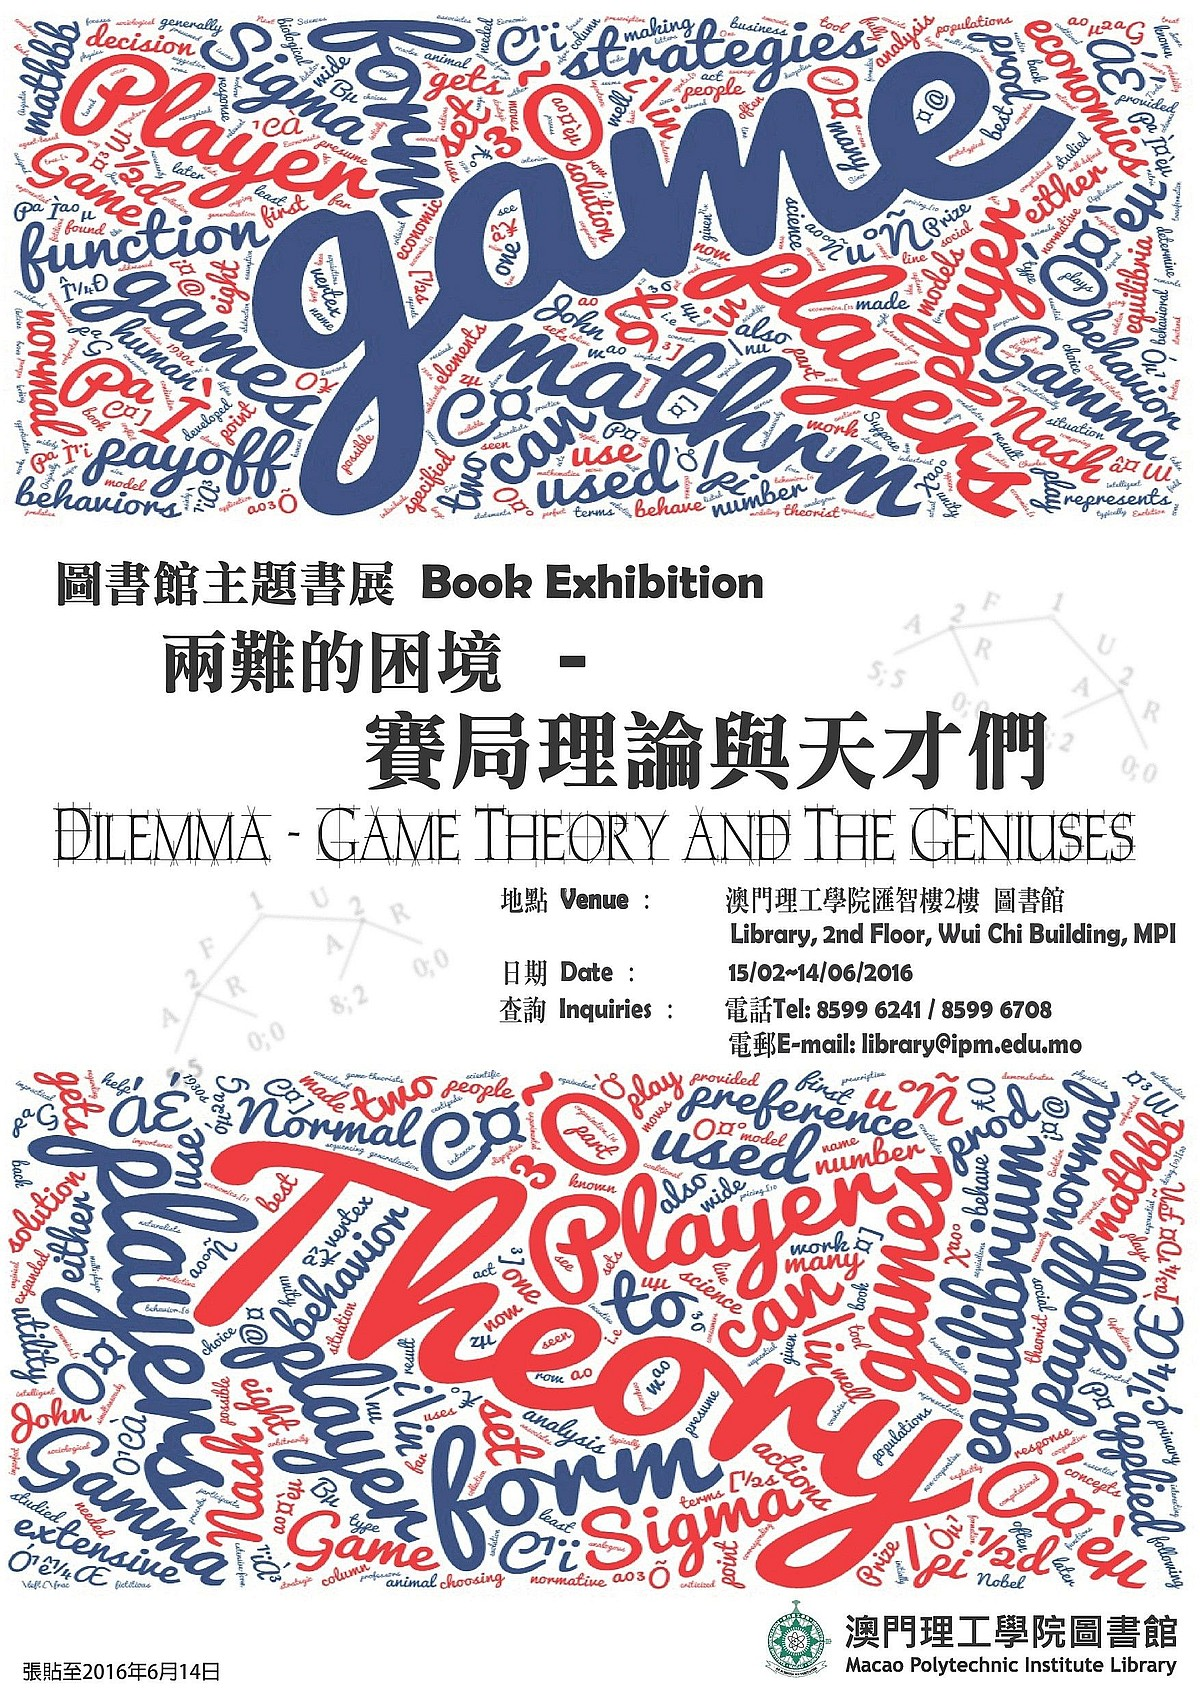 Dilemma - Game Theory and Geniuses